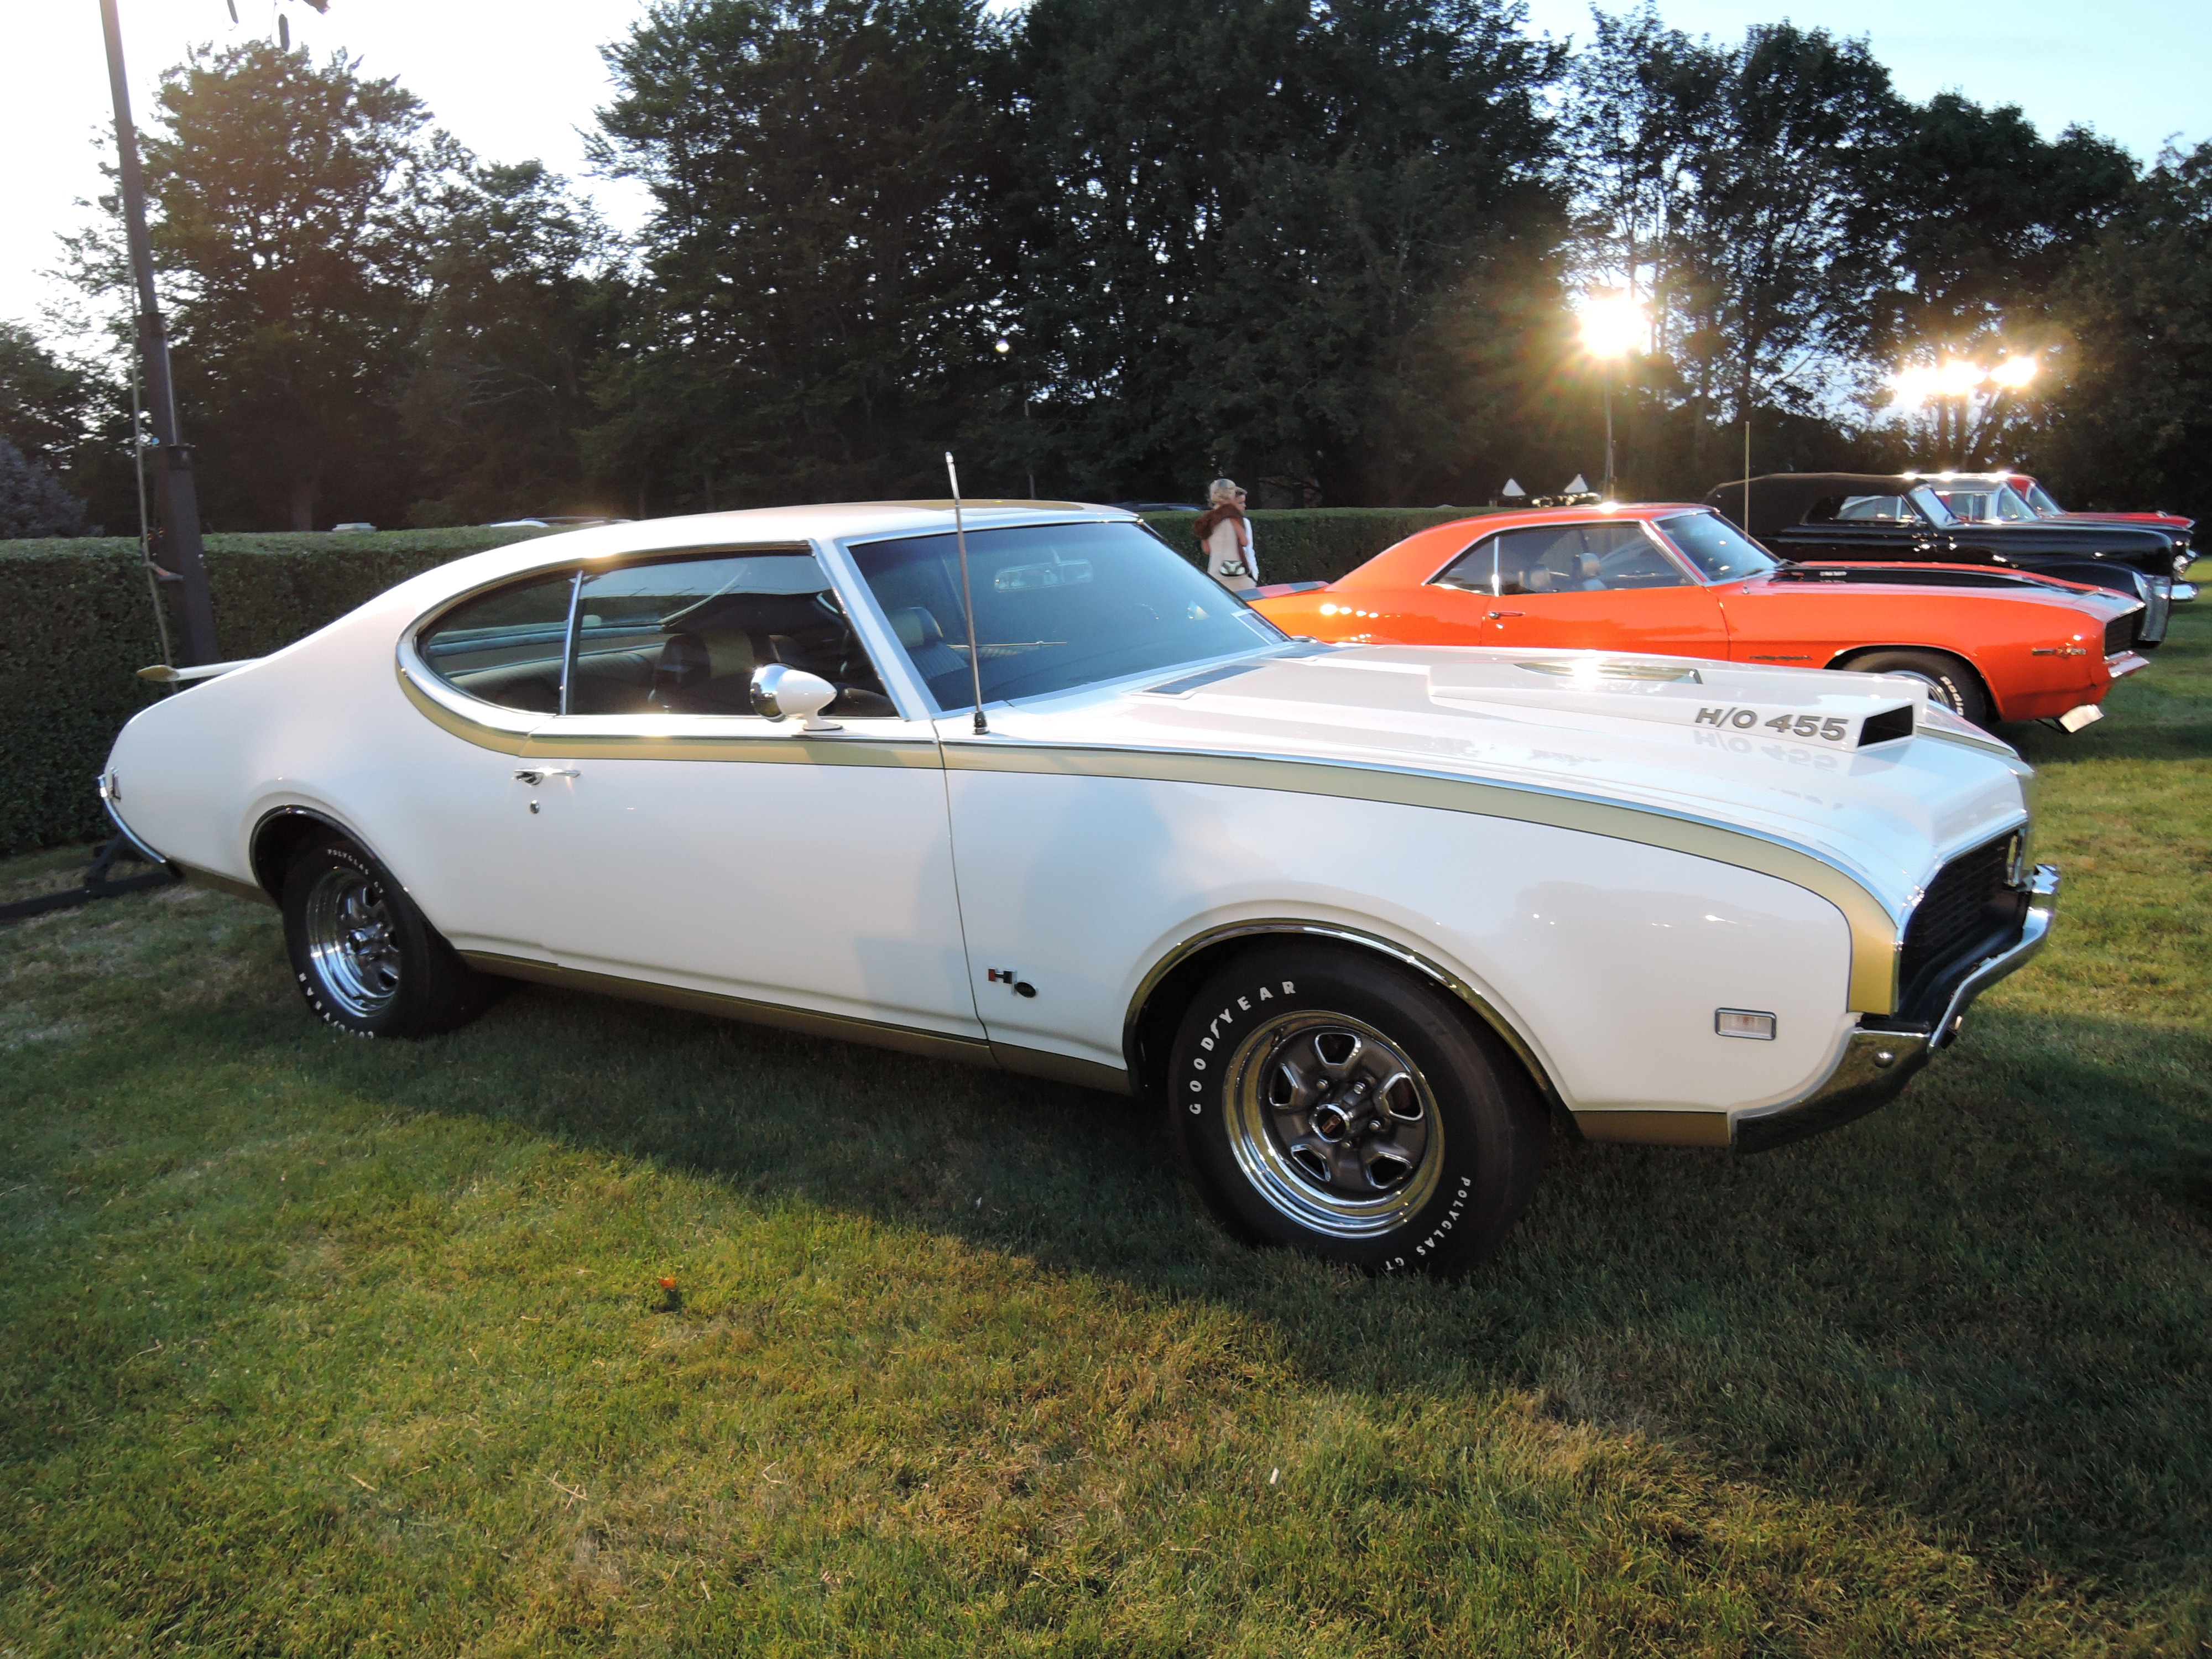 white/gold 1969 Oldsmobile 442 Coupe - Audrain Auto Museum Gala 2017